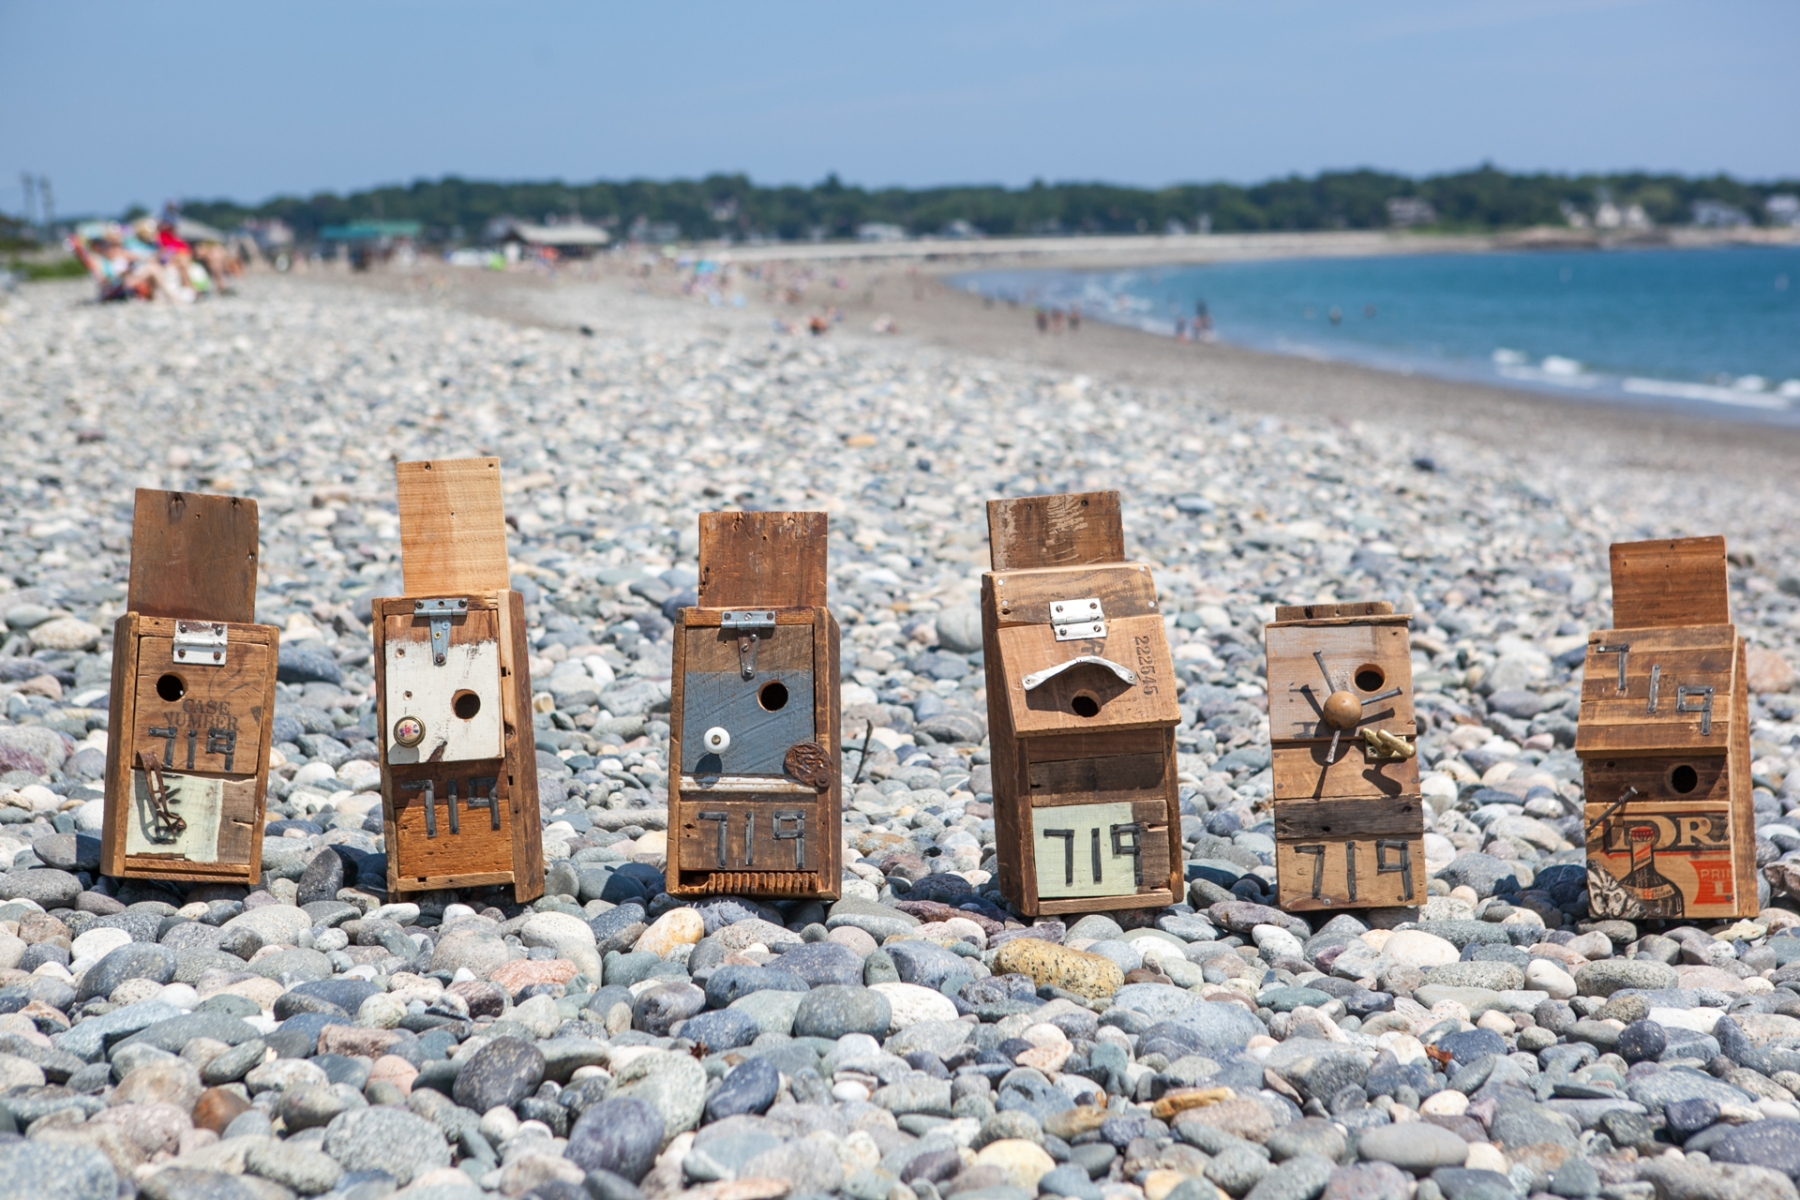 Hand made birdhouses crafted from recycled shipping crates and found material by Nate Fried-Lipski